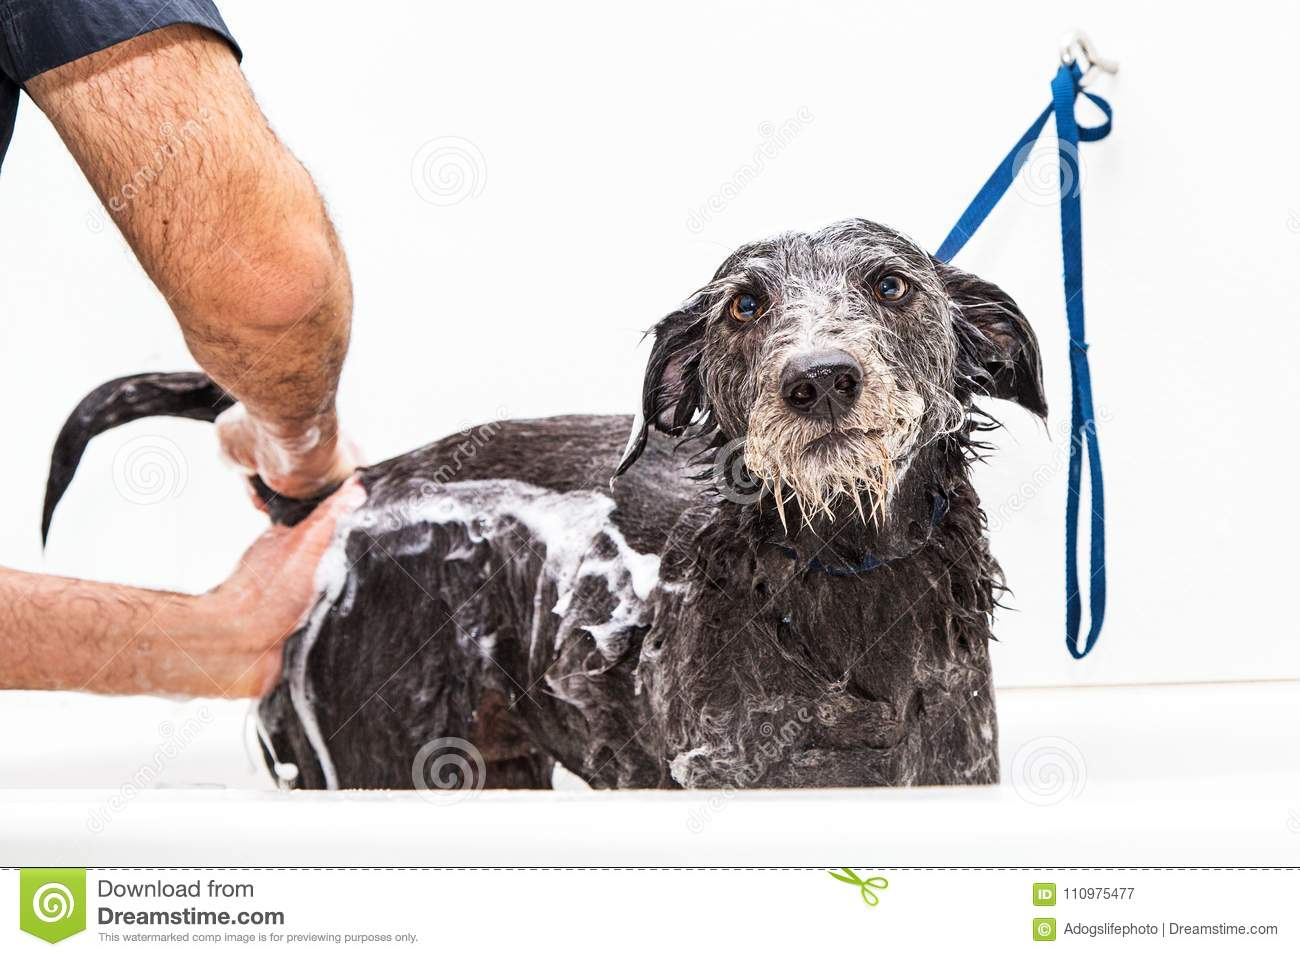 Funny photo of dog with unhappy expression as a groomer expresses her anal  glands